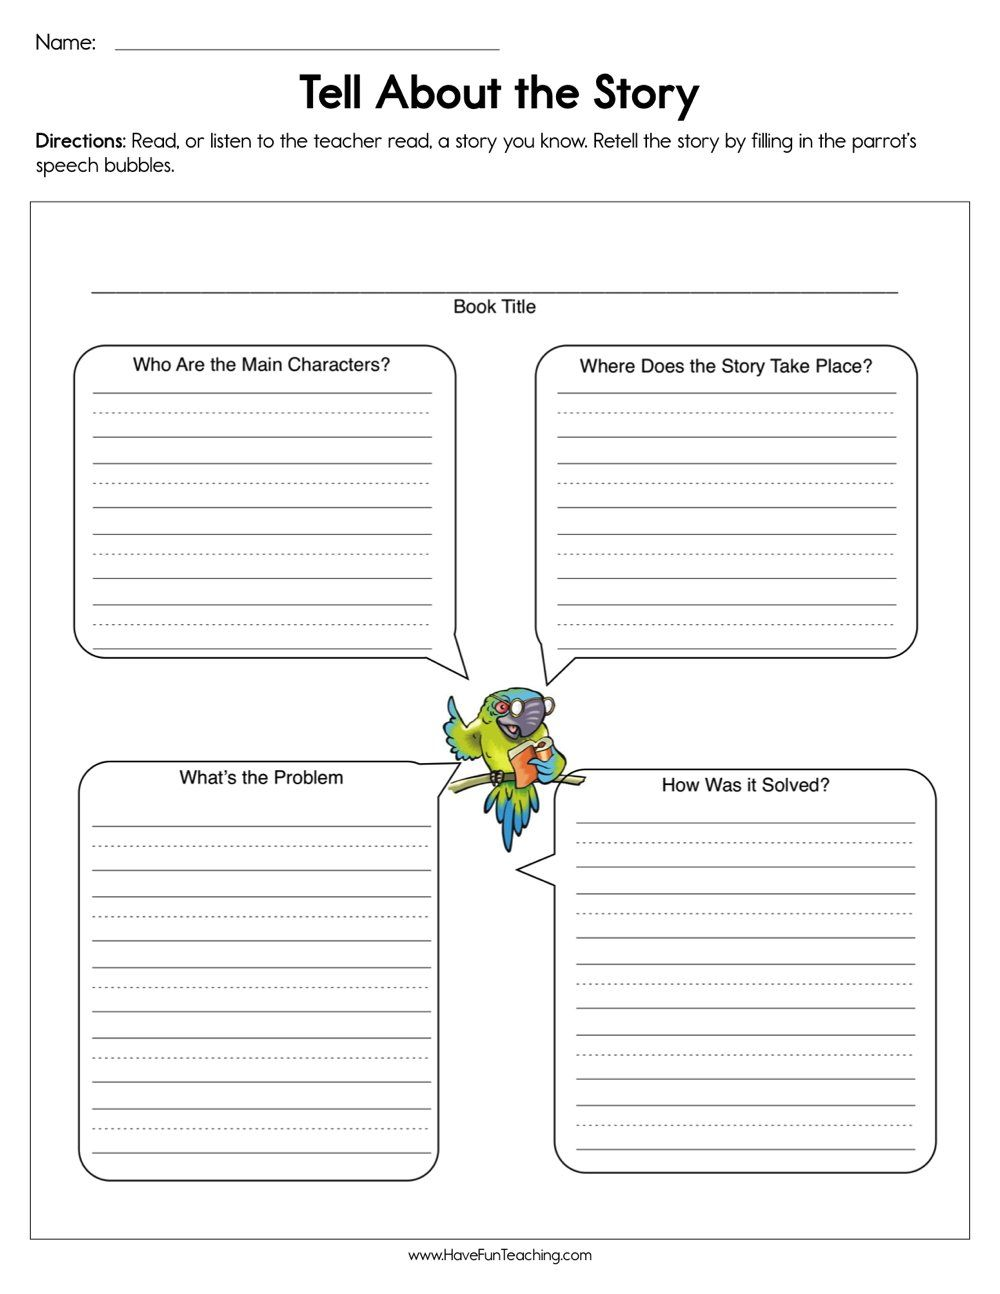 Tell About the Story Worksheet   Reading comprehension worksheets [ 1294 x 1000 Pixel ]